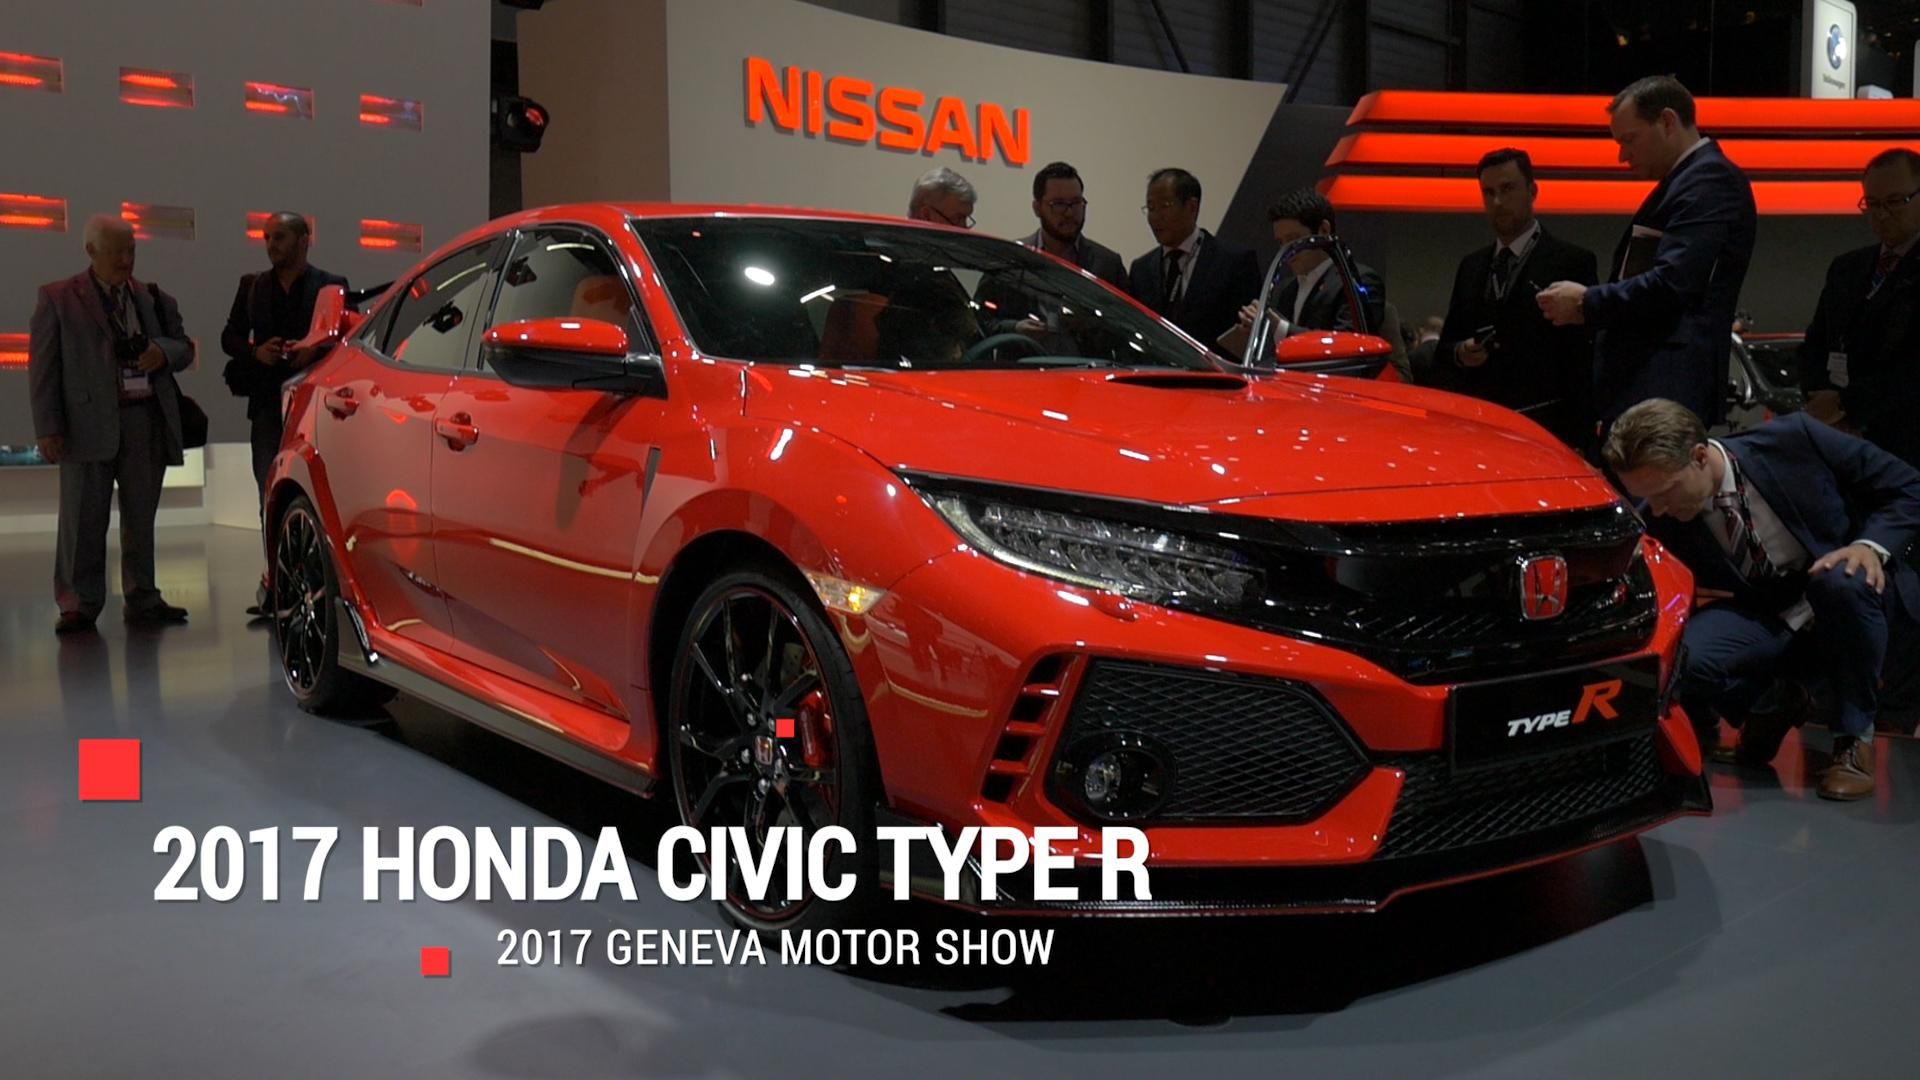 Brand New 2017 Honda Civic Type R Wrecked On Drive Home From Dealer    Autoblog